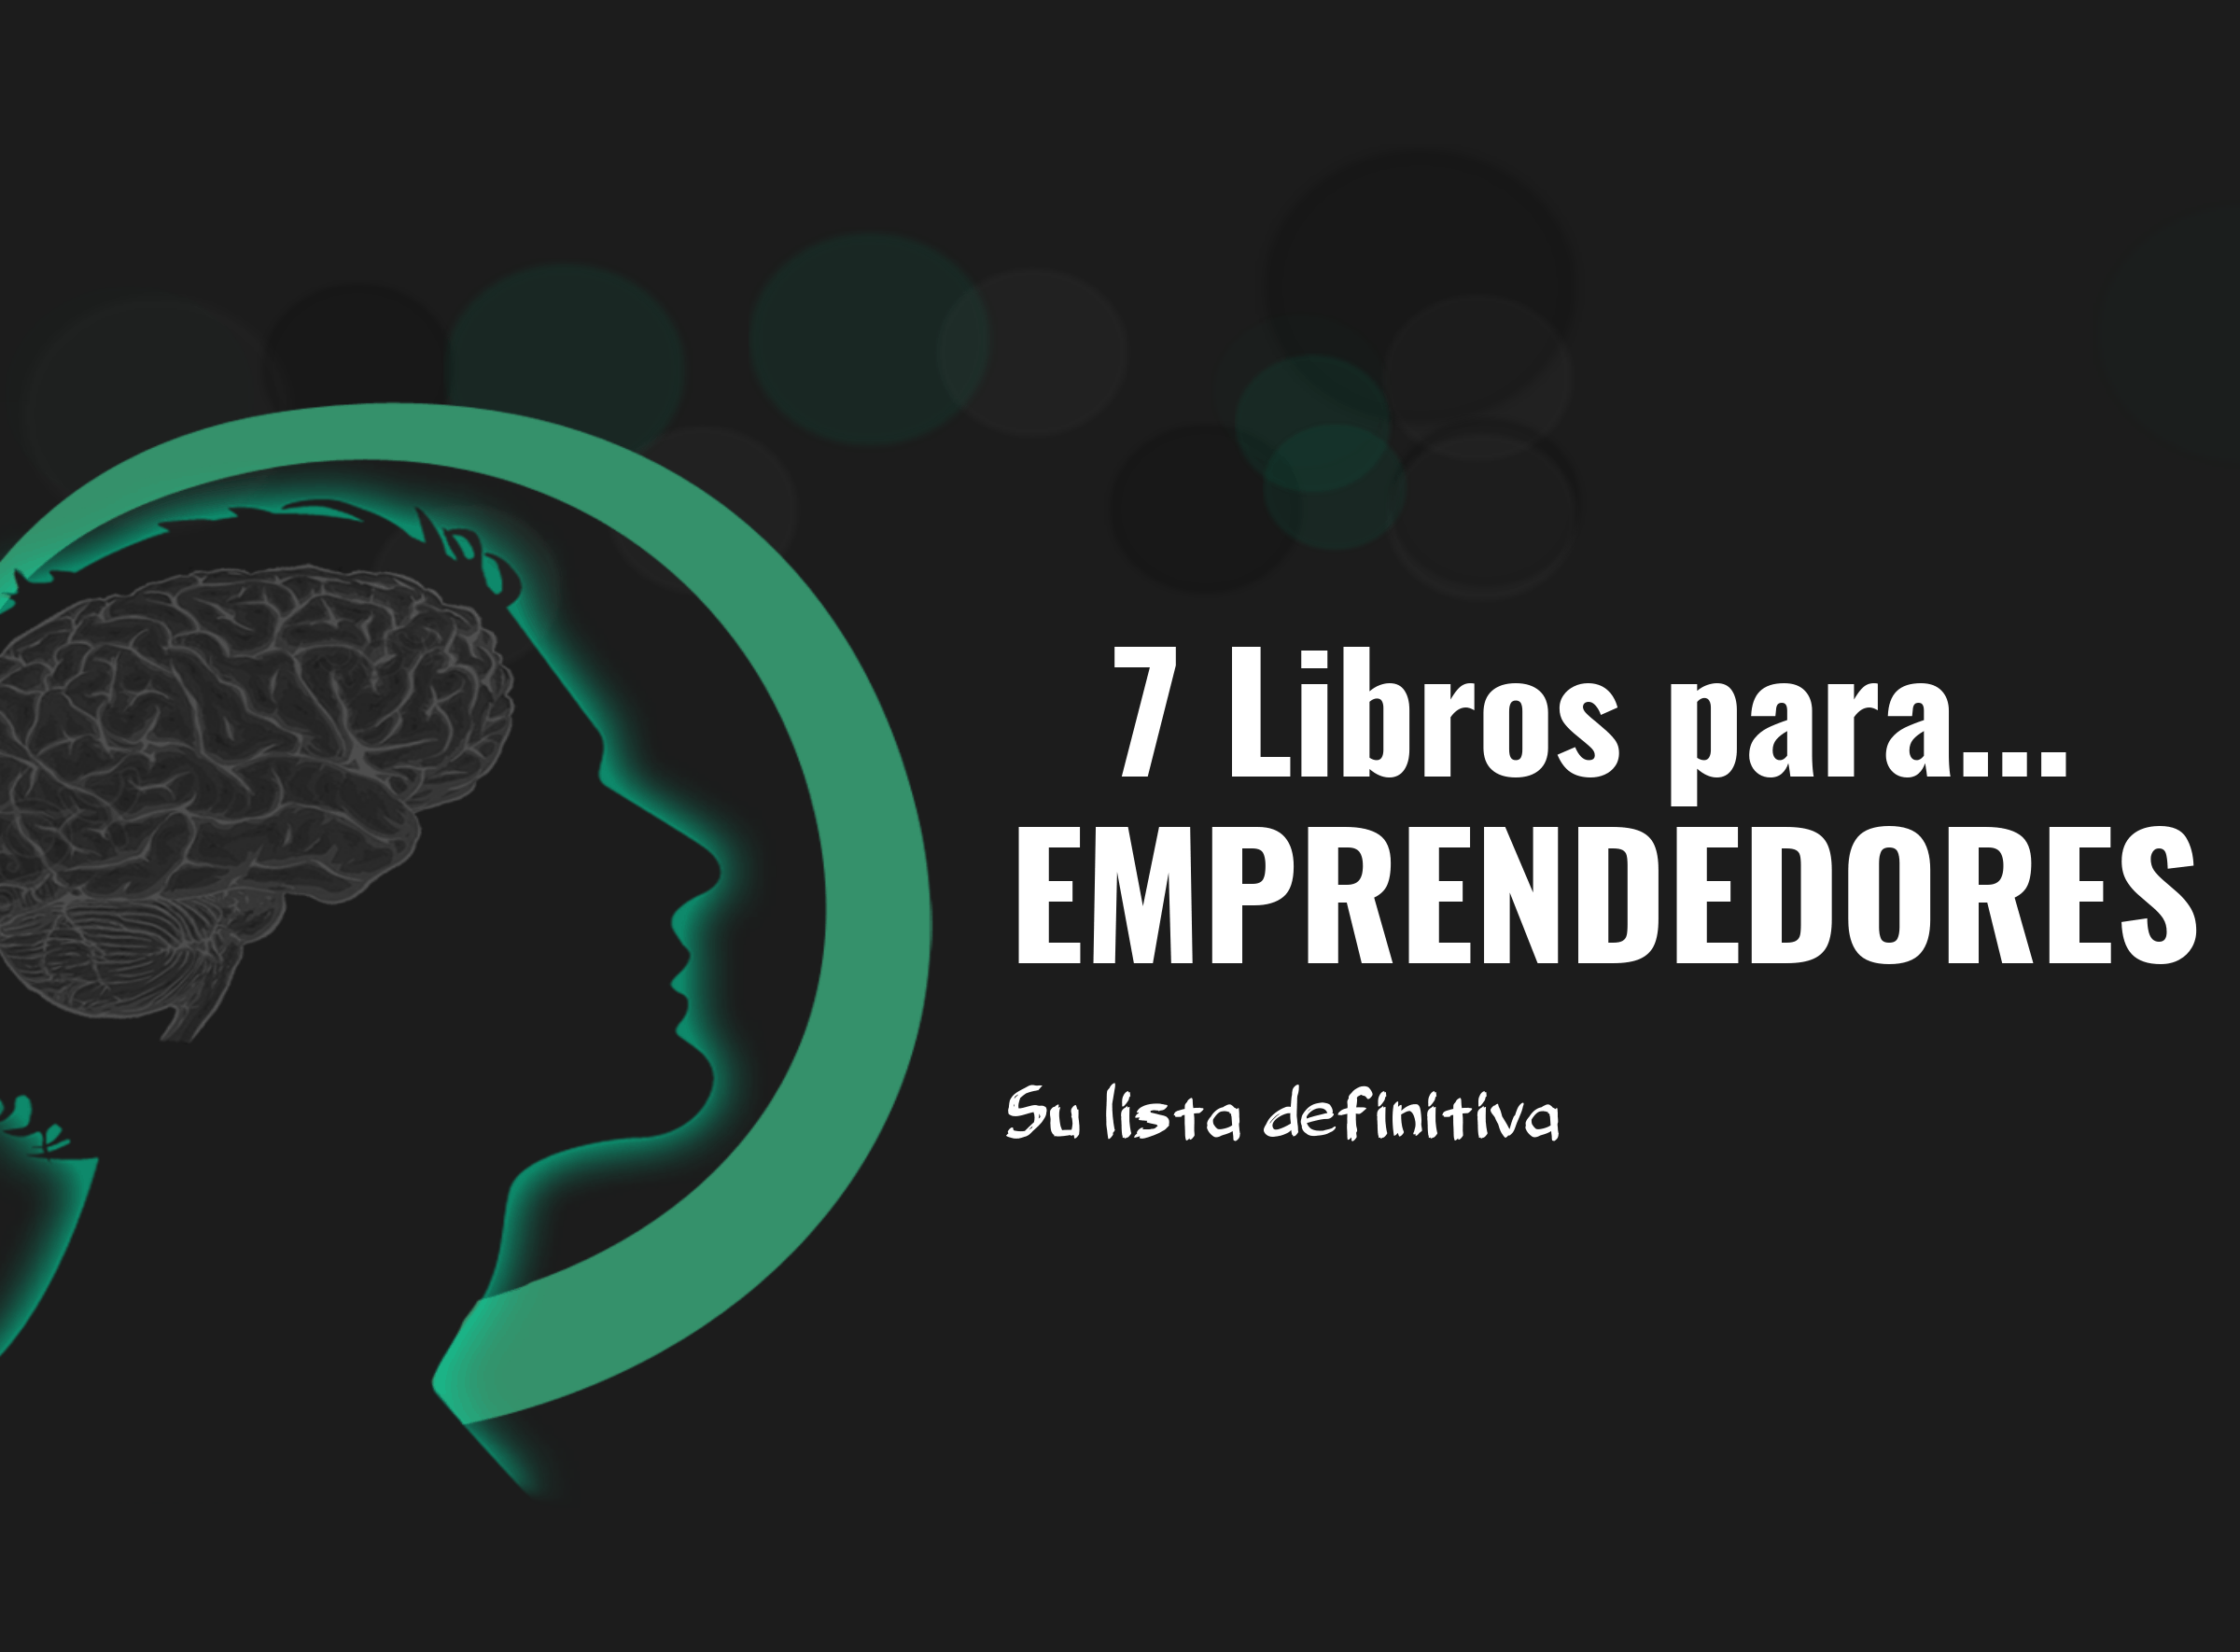 Books for Entrepreneurs Under 30 | Libros para emprendedores - La Semana Laboral de 4 Horas